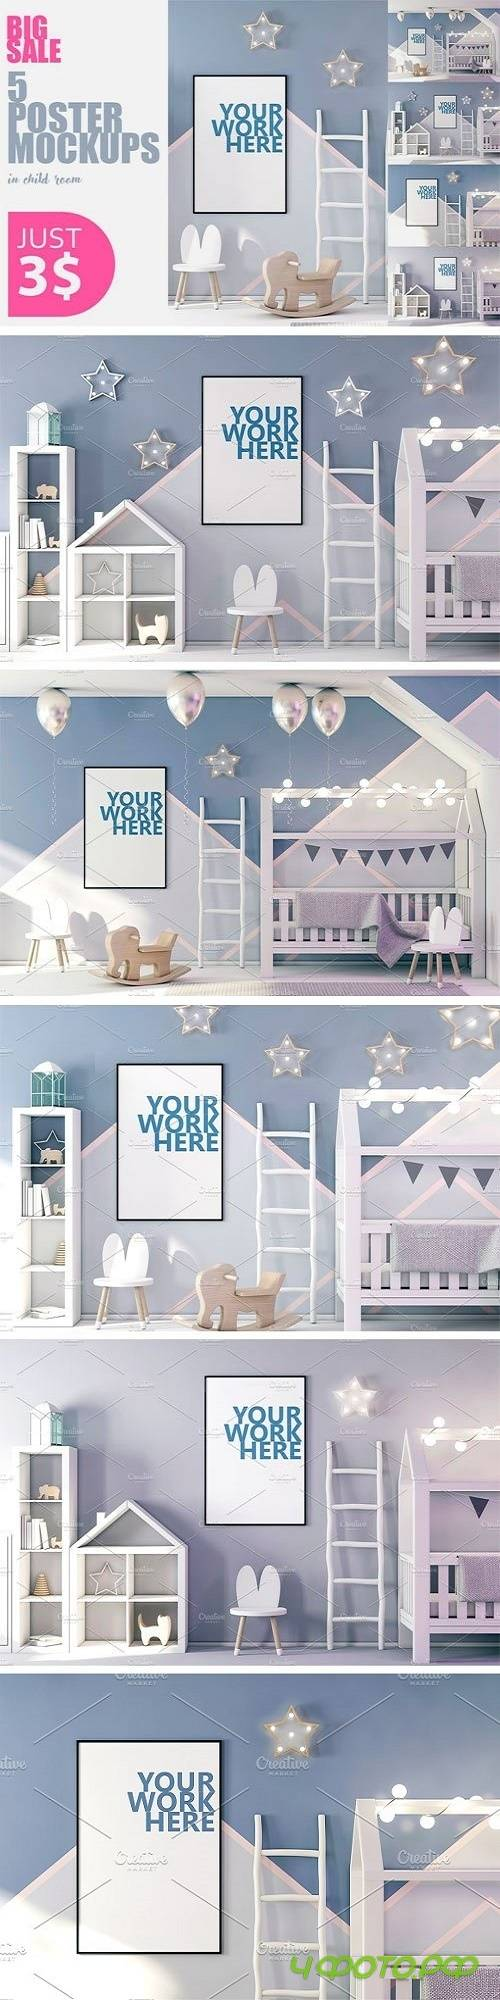 PSD Posters Mockup in Child Interior - 2350216